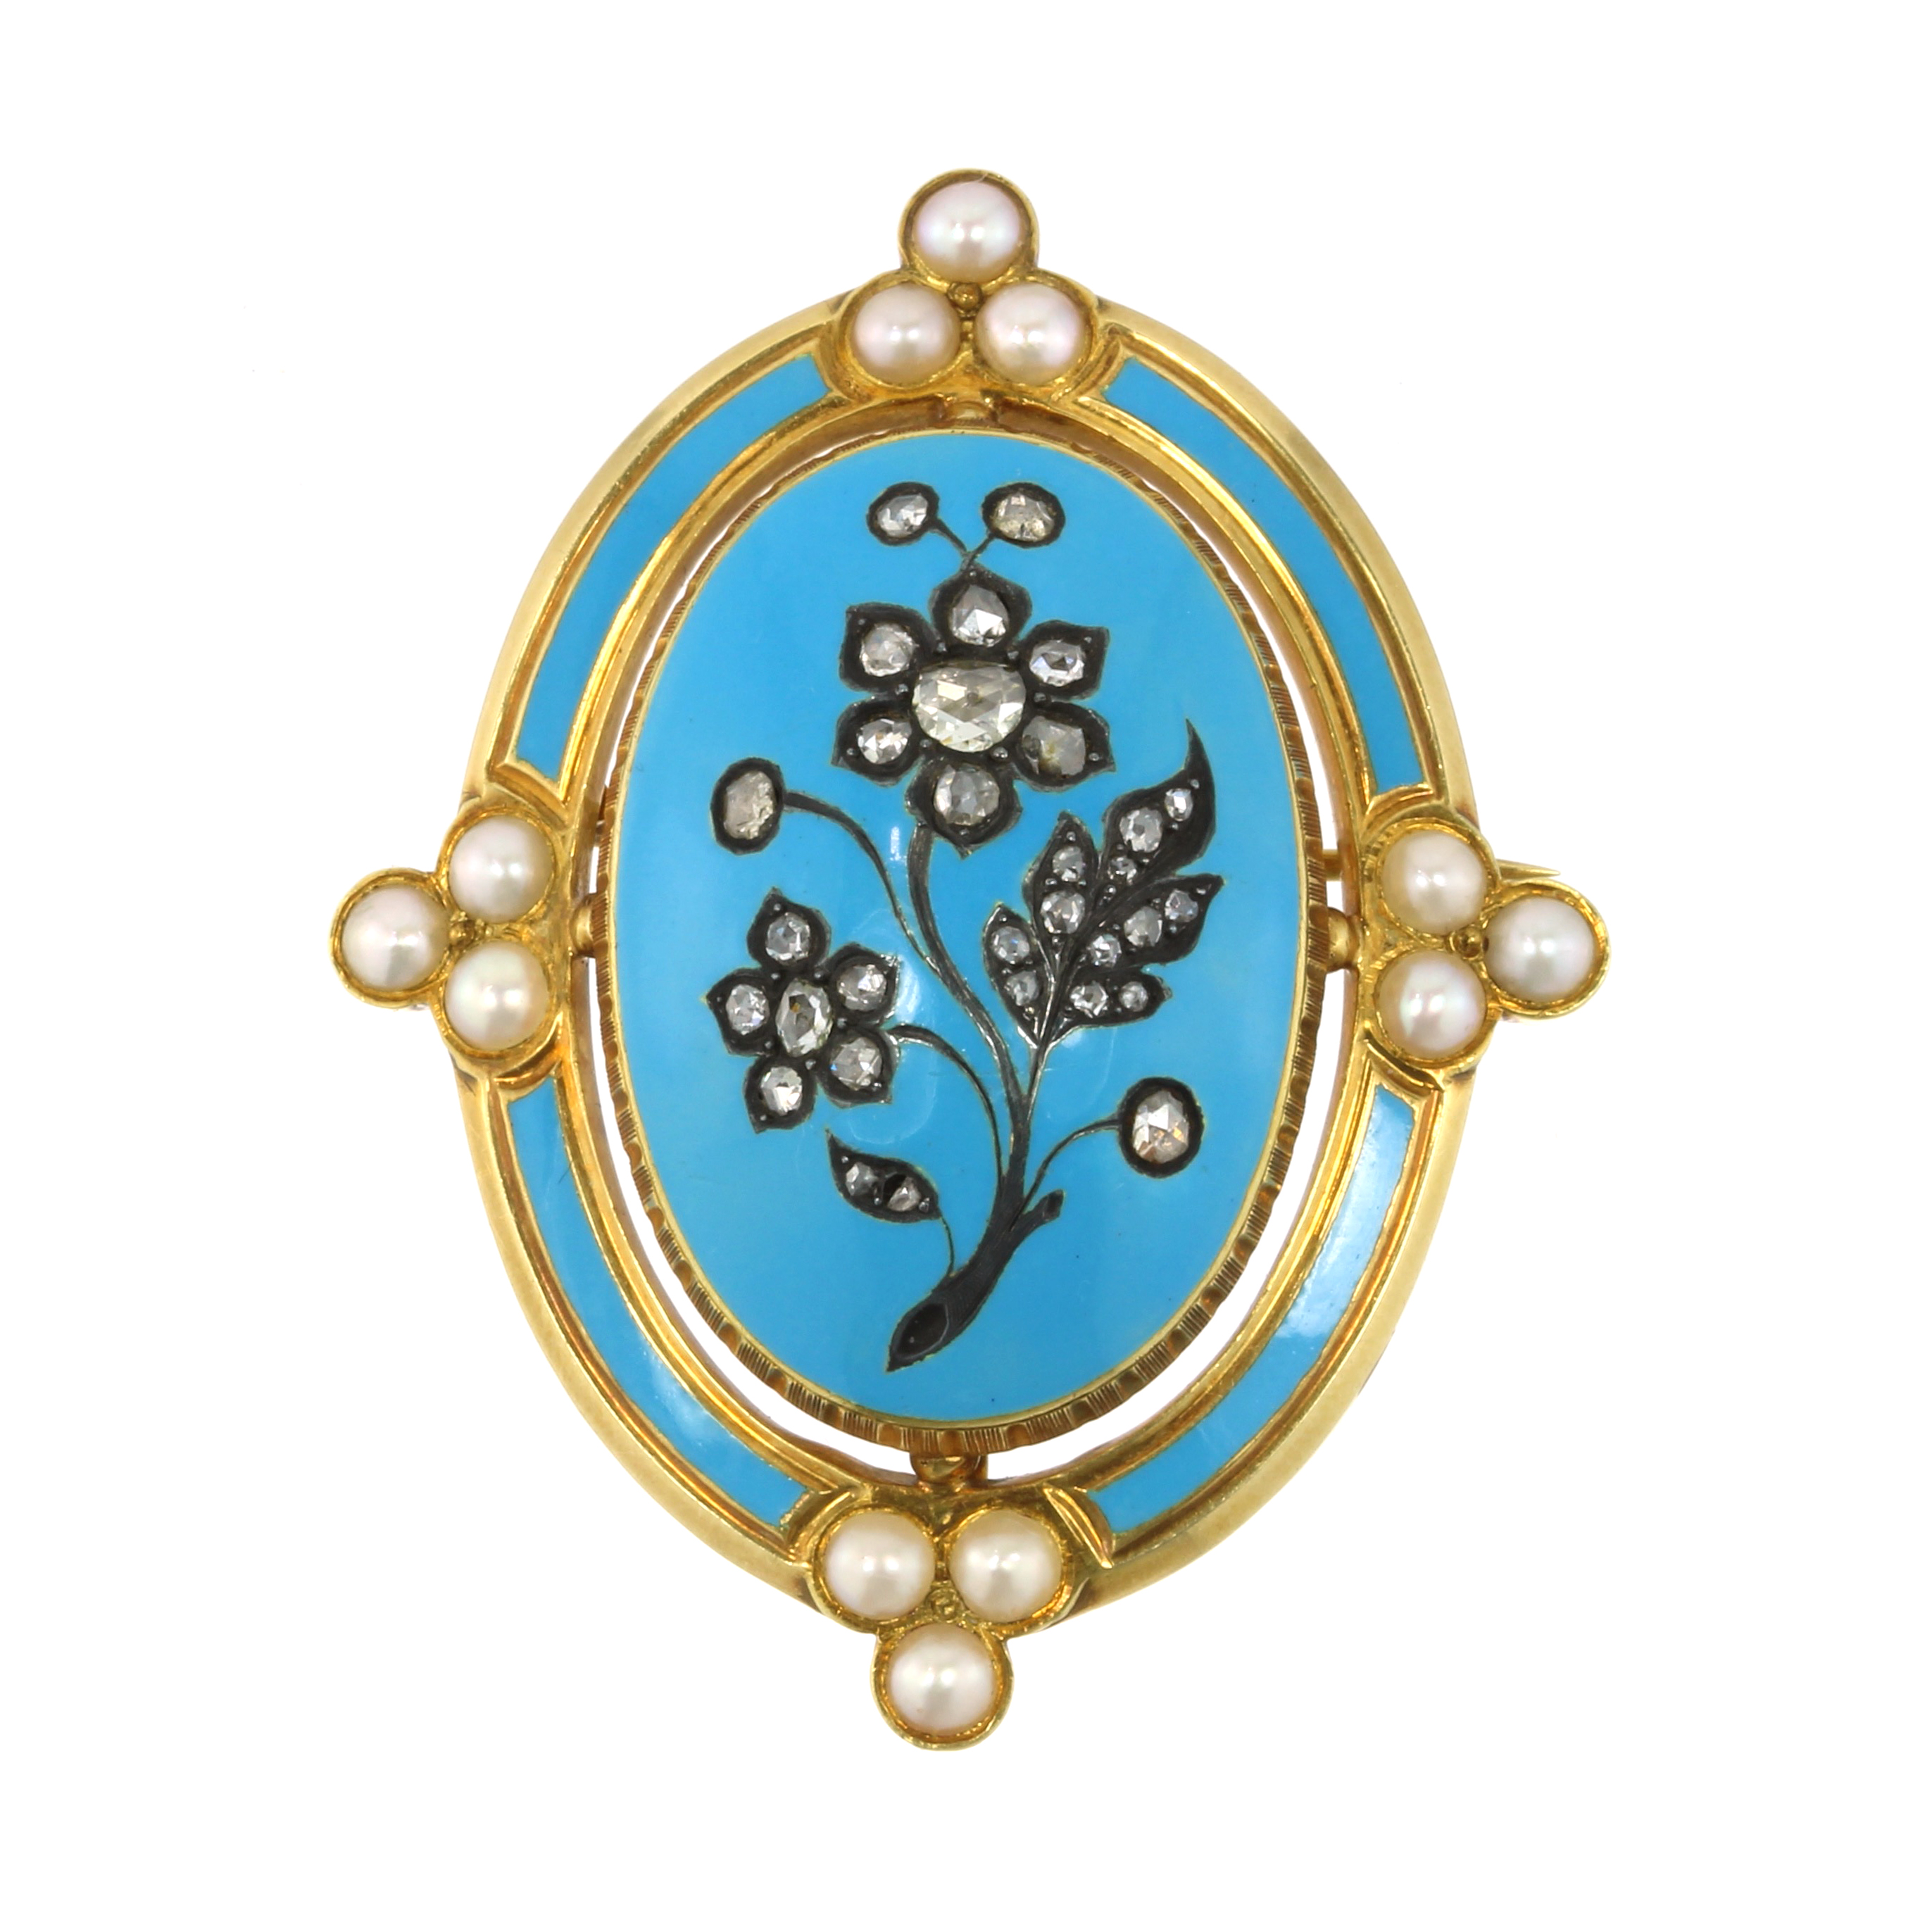 Los 20 - A DIAMOND AND PEARL FORGET-ME-NOT BROOCH, CIRCA 1870 designed as a large oval panel decorated with